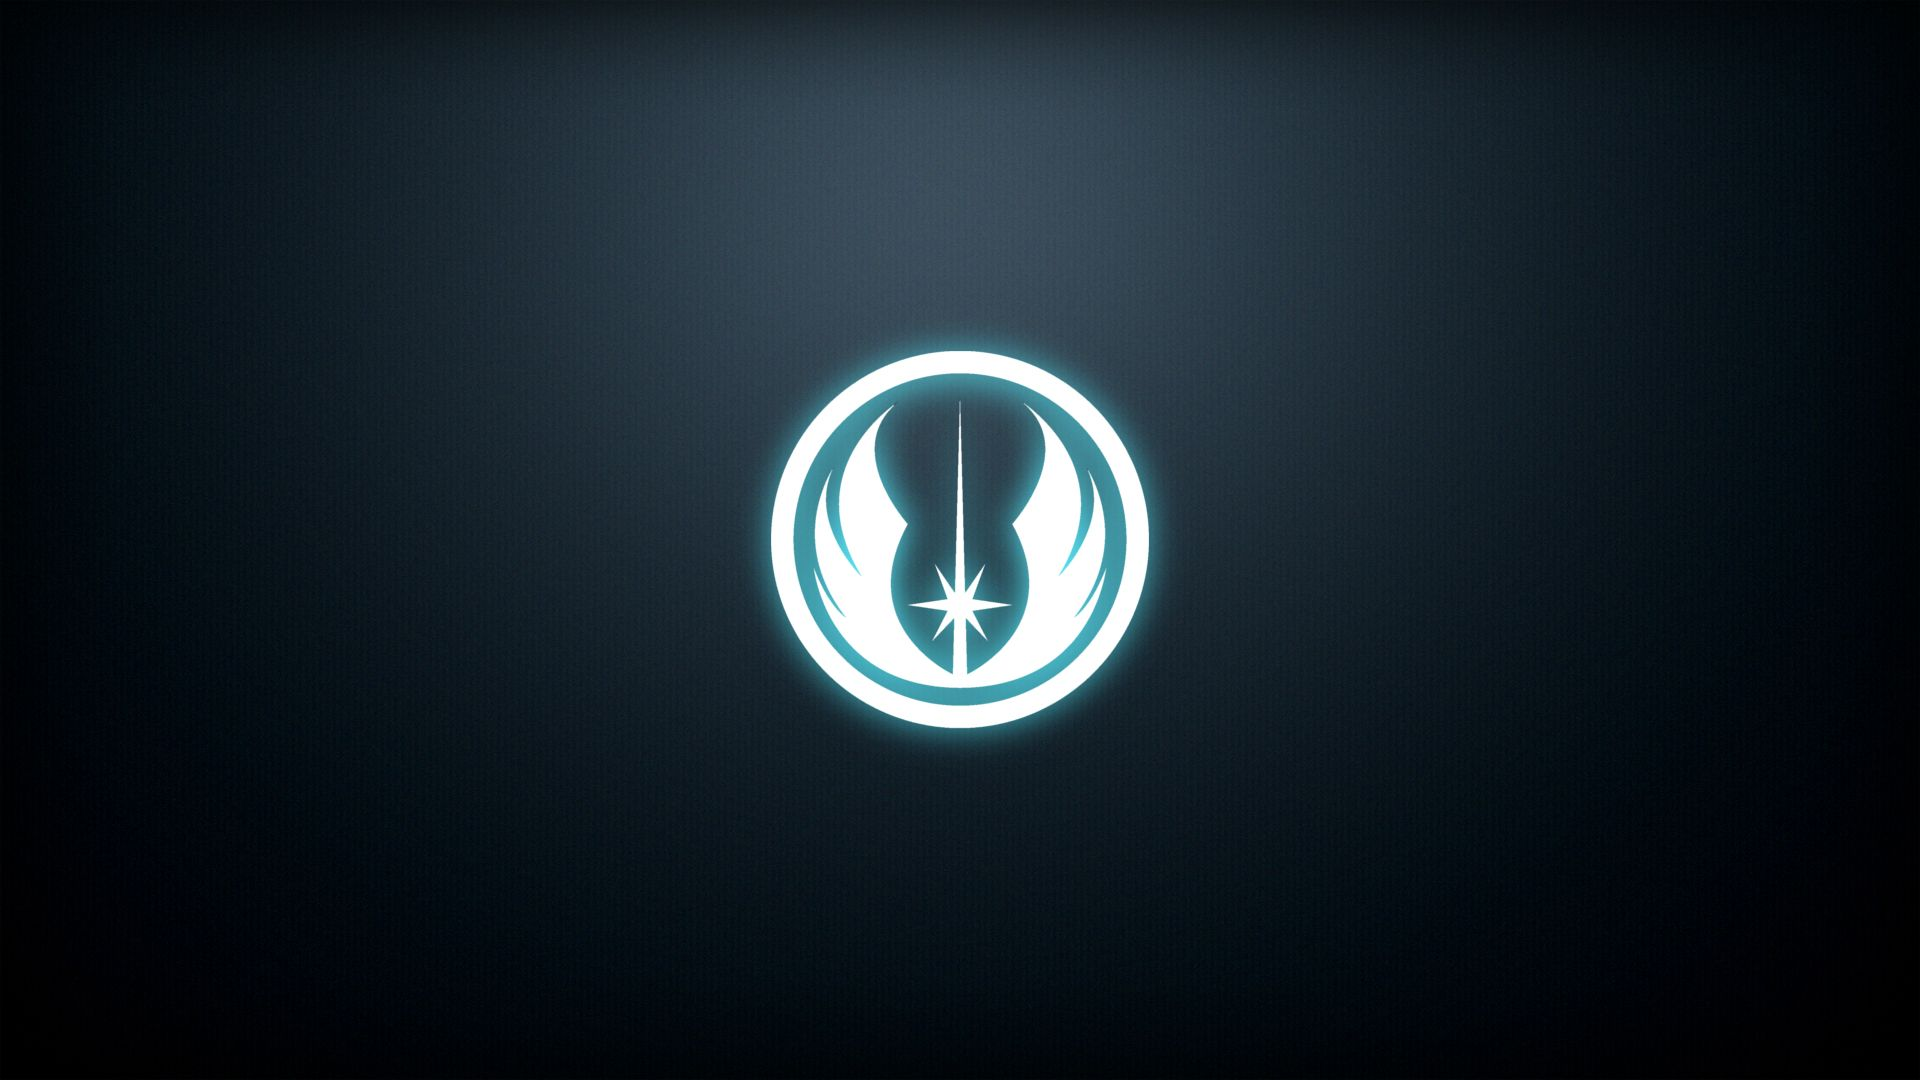 Star Wars Jedi Symbol Wallpaper 1 1920x1080